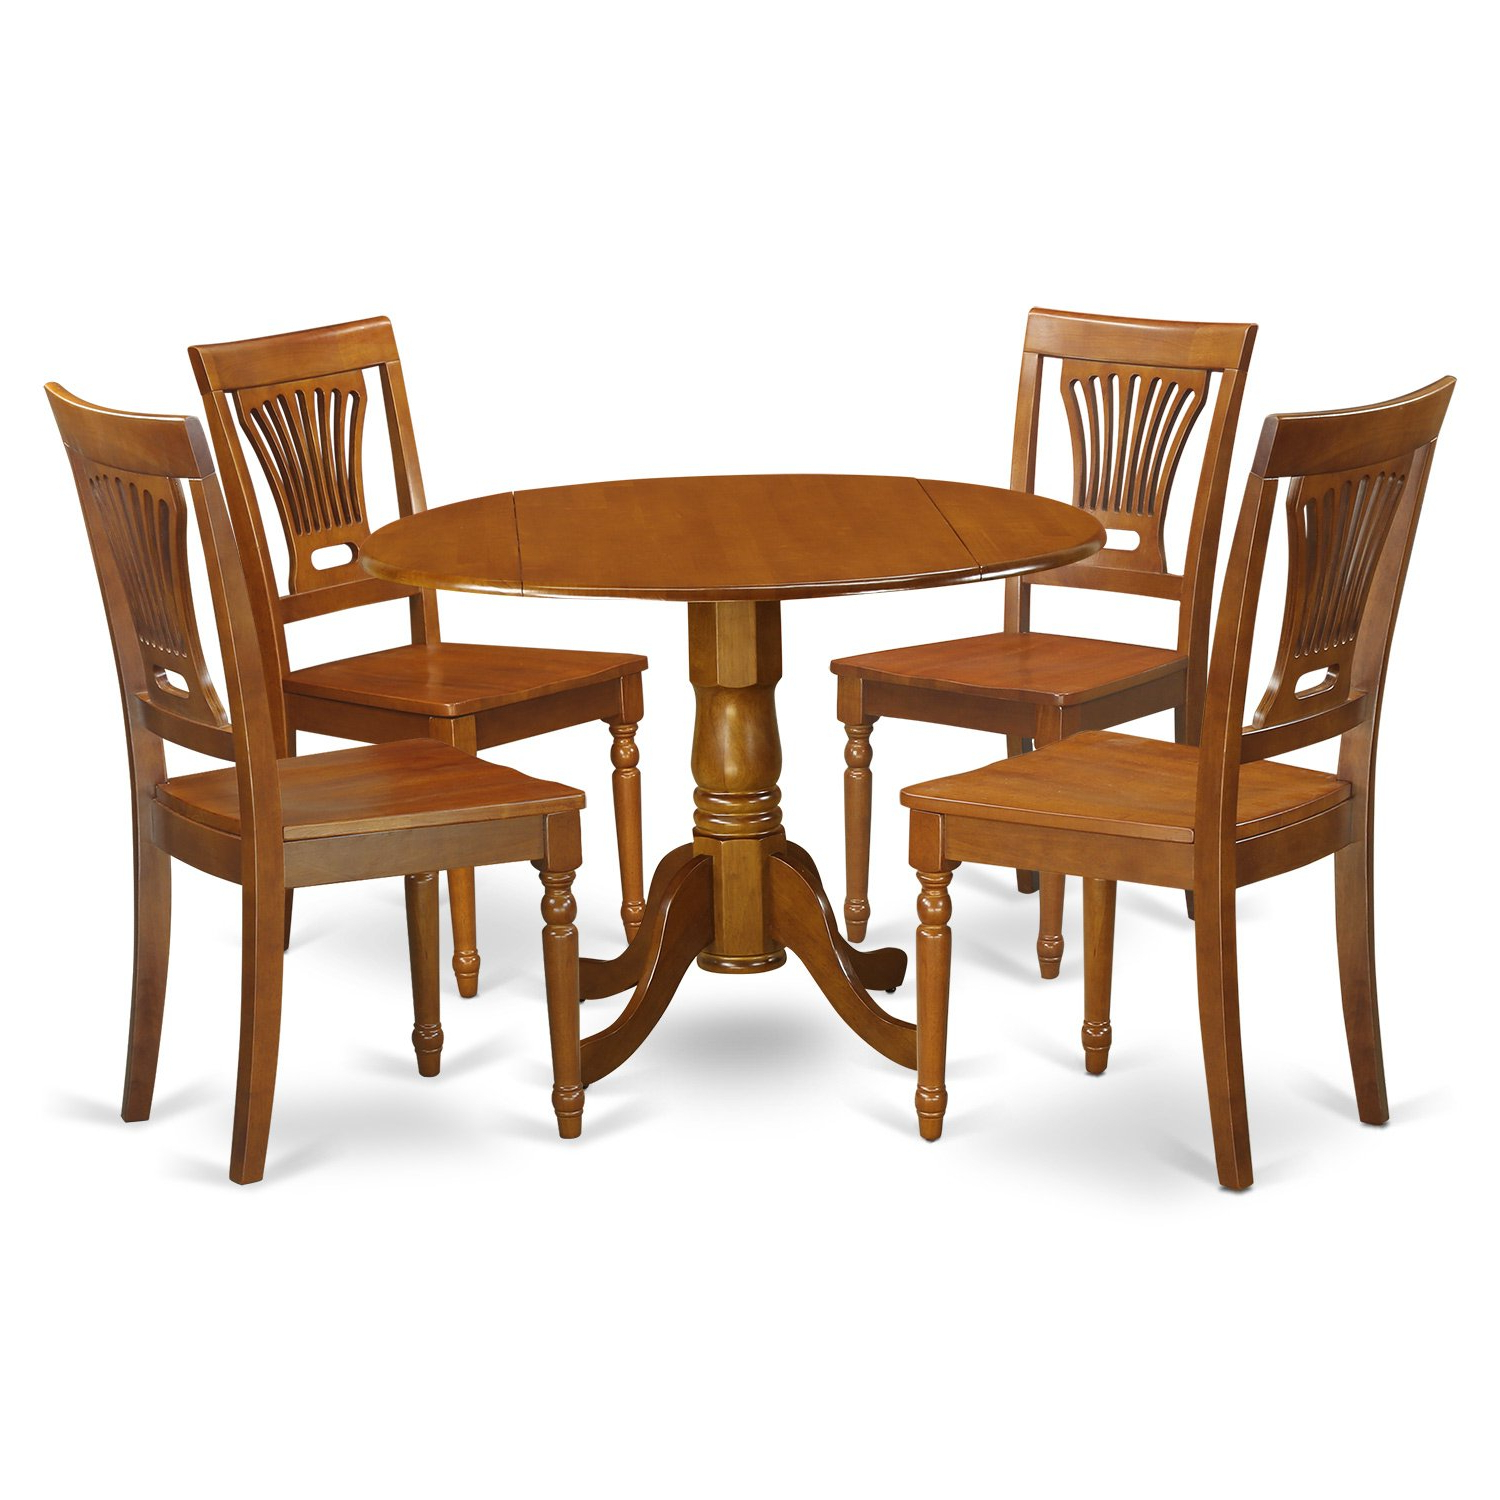 Fashionable 5 Piece Breakfast Nook Dining Sets In East West Furniture Dlpl5 Sbr W 5 Piece Kitchen Nook Dining Table Set,  Saddle Brown Finish (View 6 of 20)